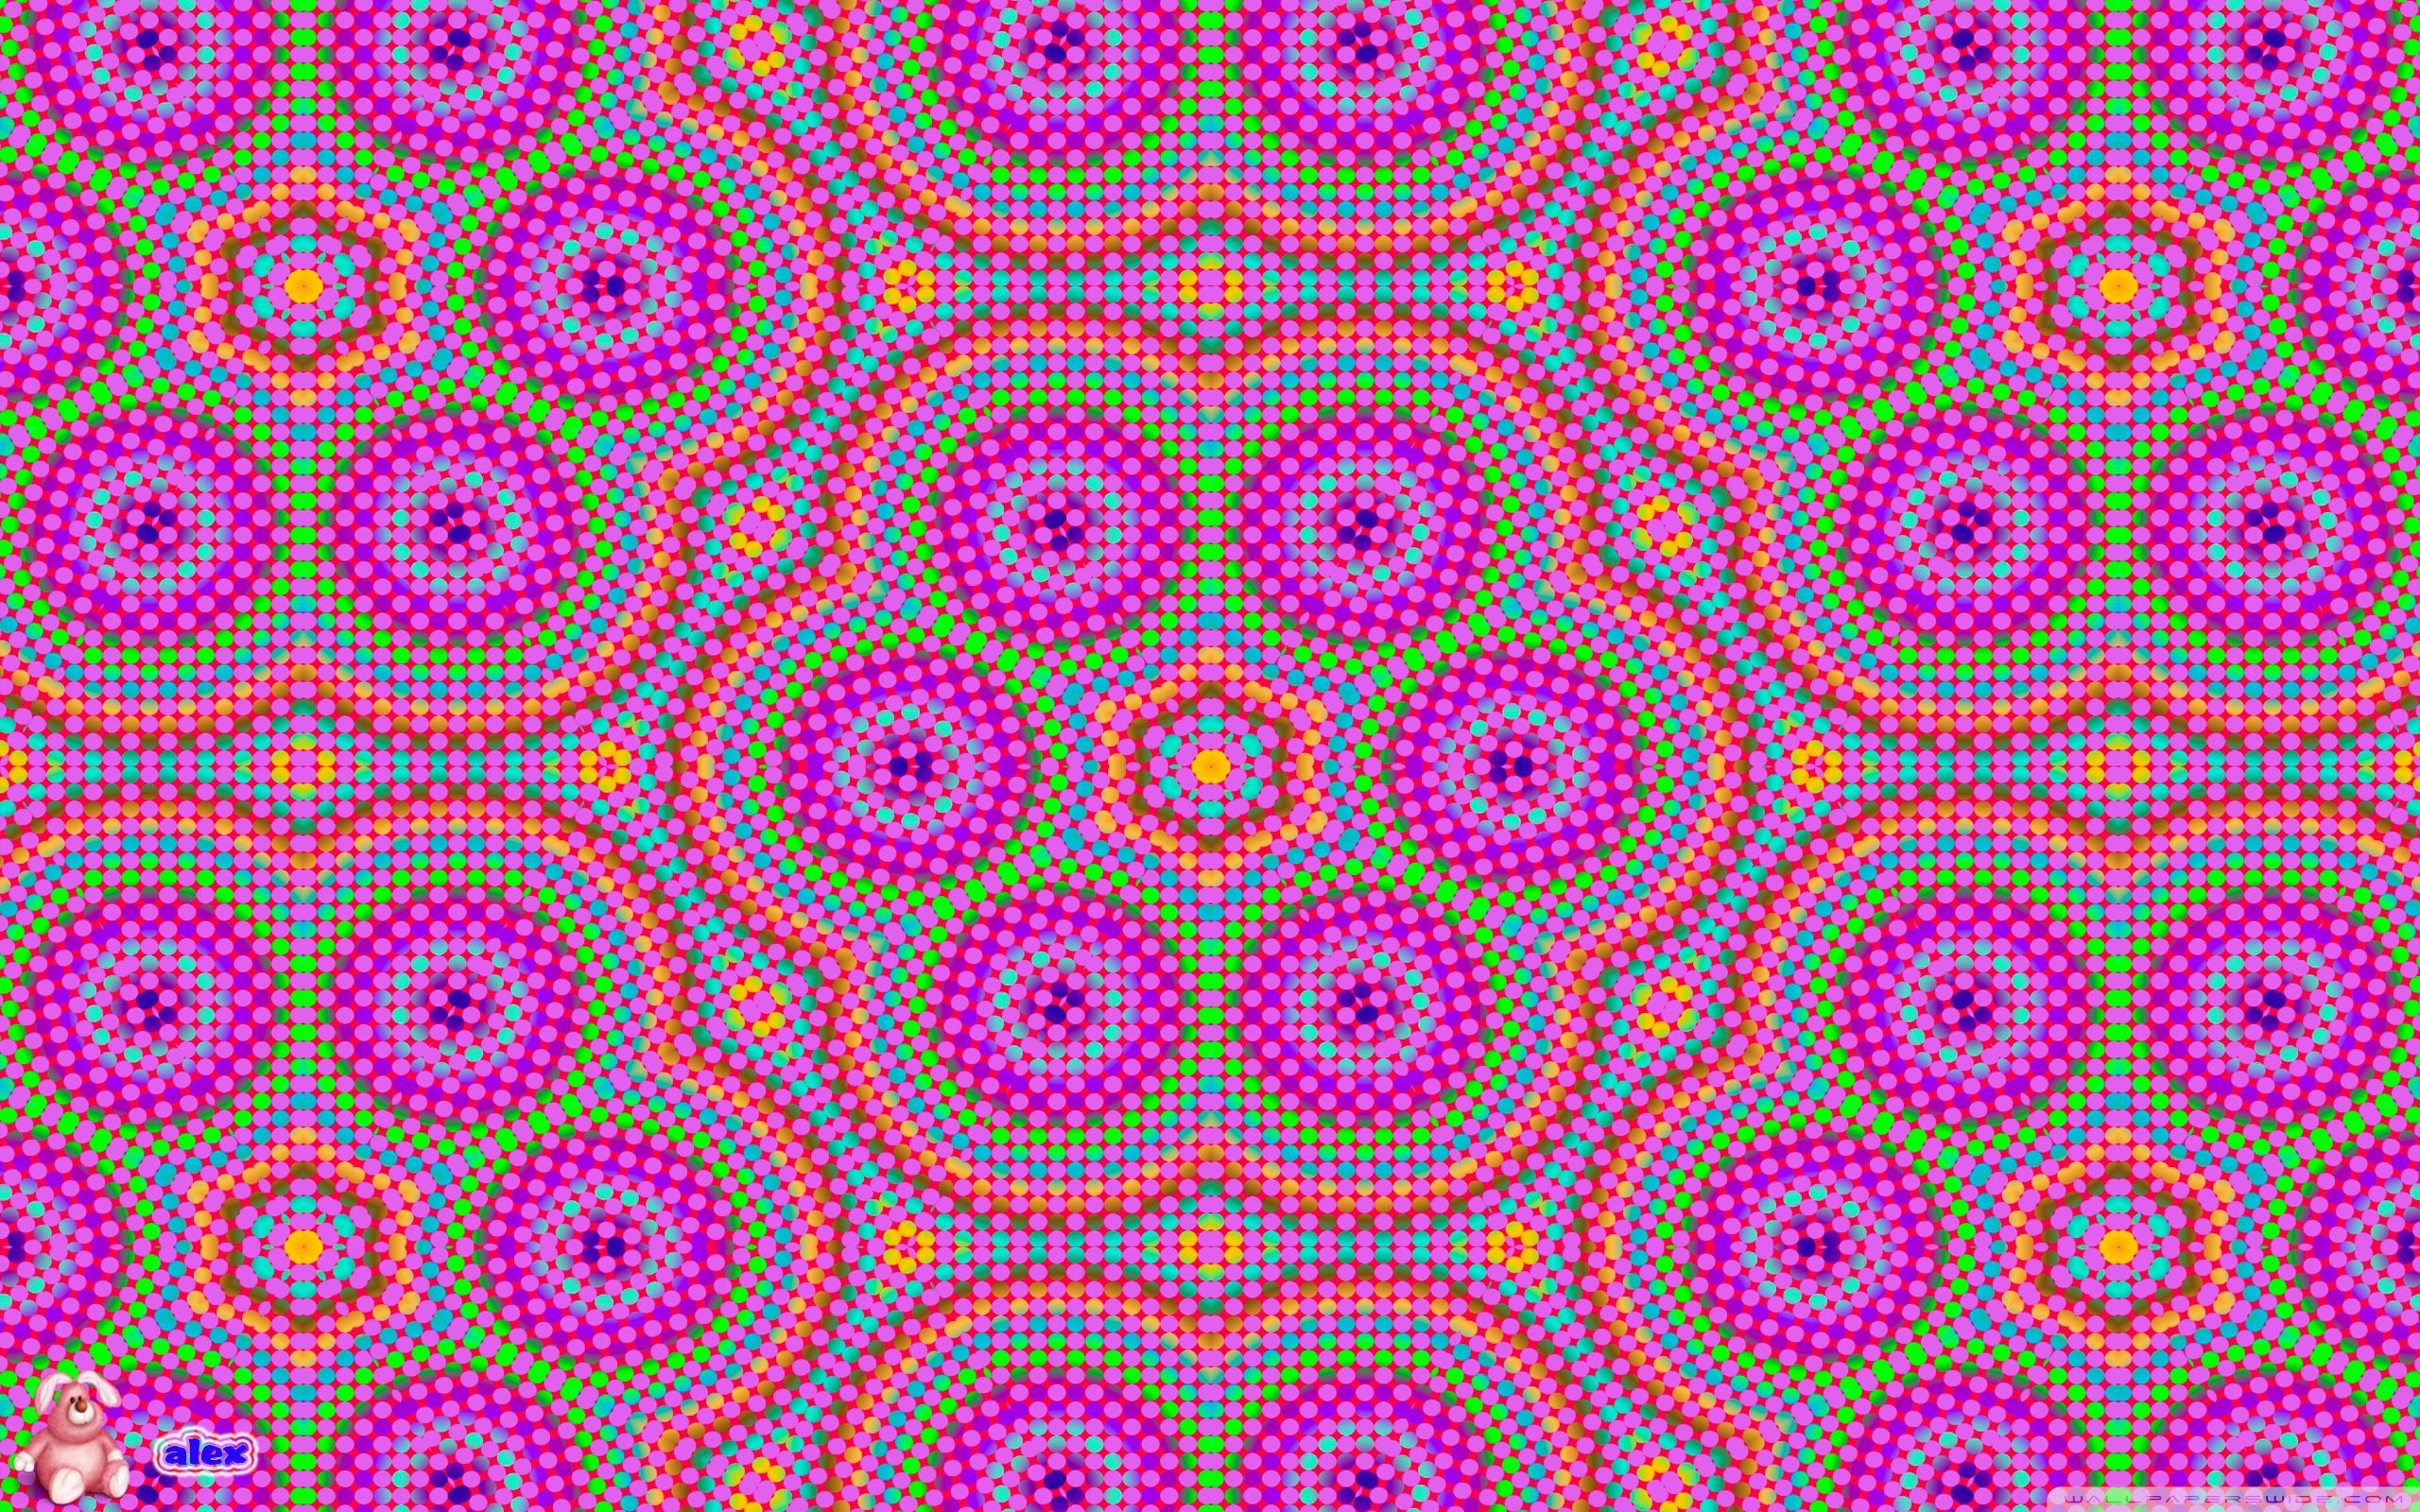 Wonderful Wallpaper Macbook Psychedelic - psychedelic-wallpaper-2560x1600  Trends_924983.jpg